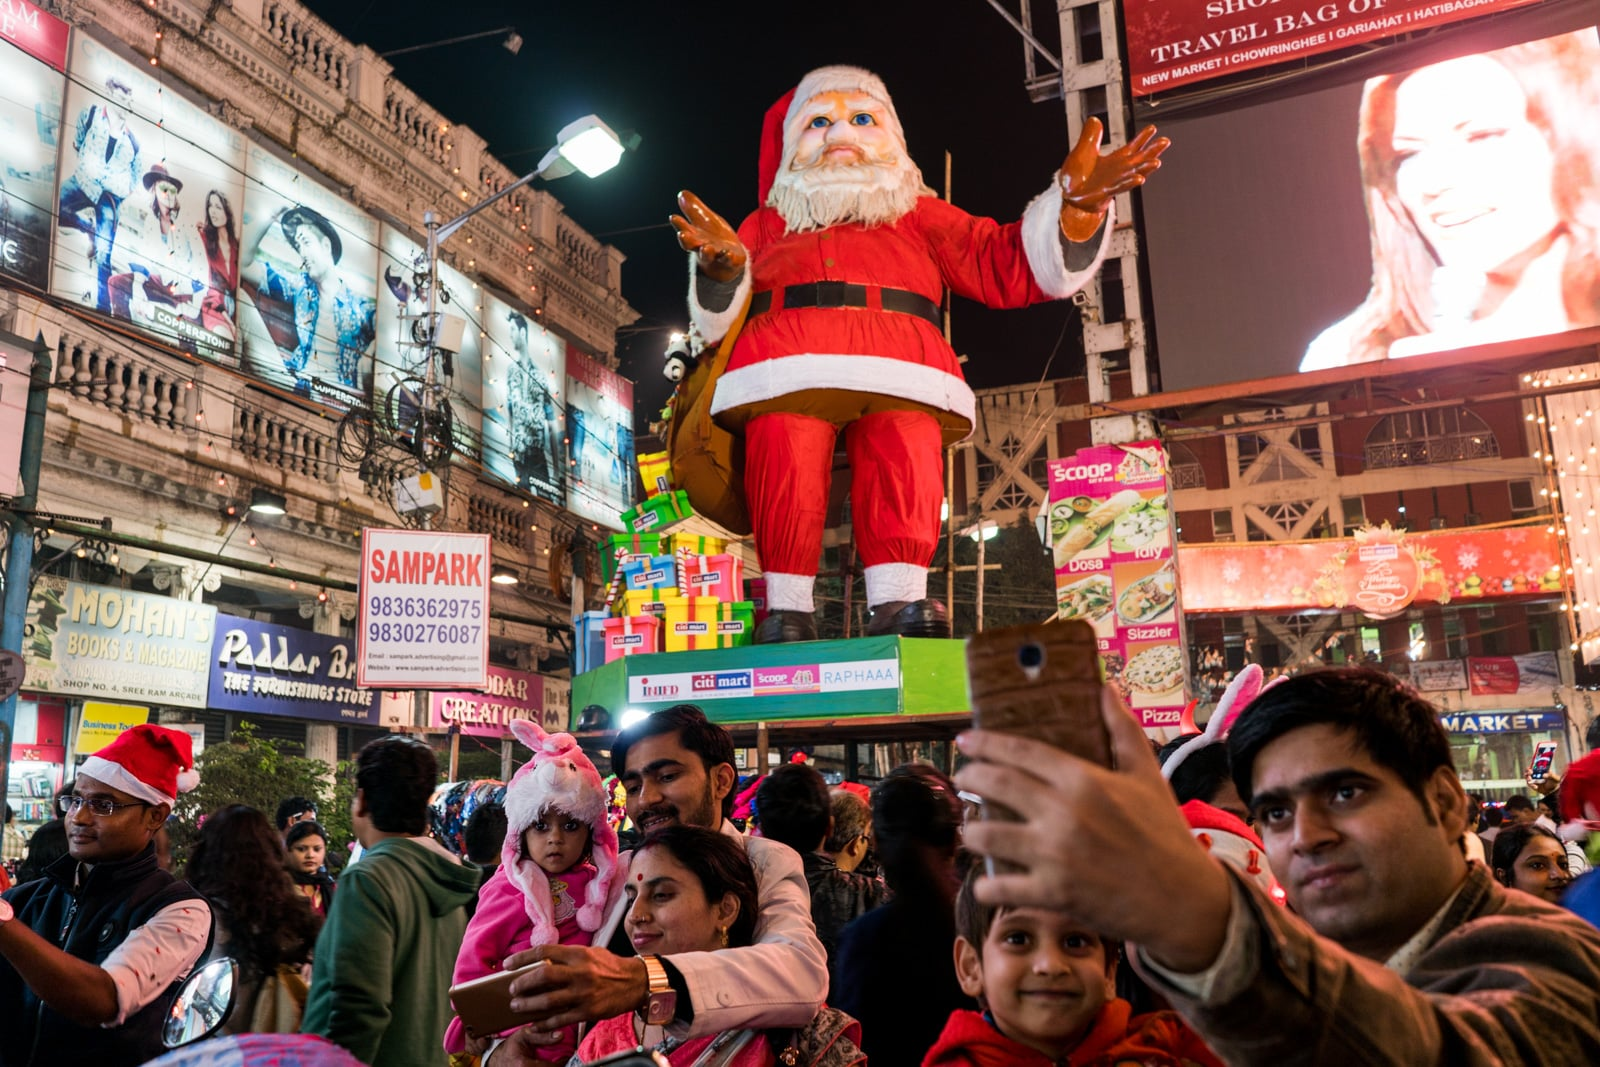 Christmas in Kolkata, India - A creepy Santa Claus statue overlooking pedestrians in the market - Lost With Purpose travel blog